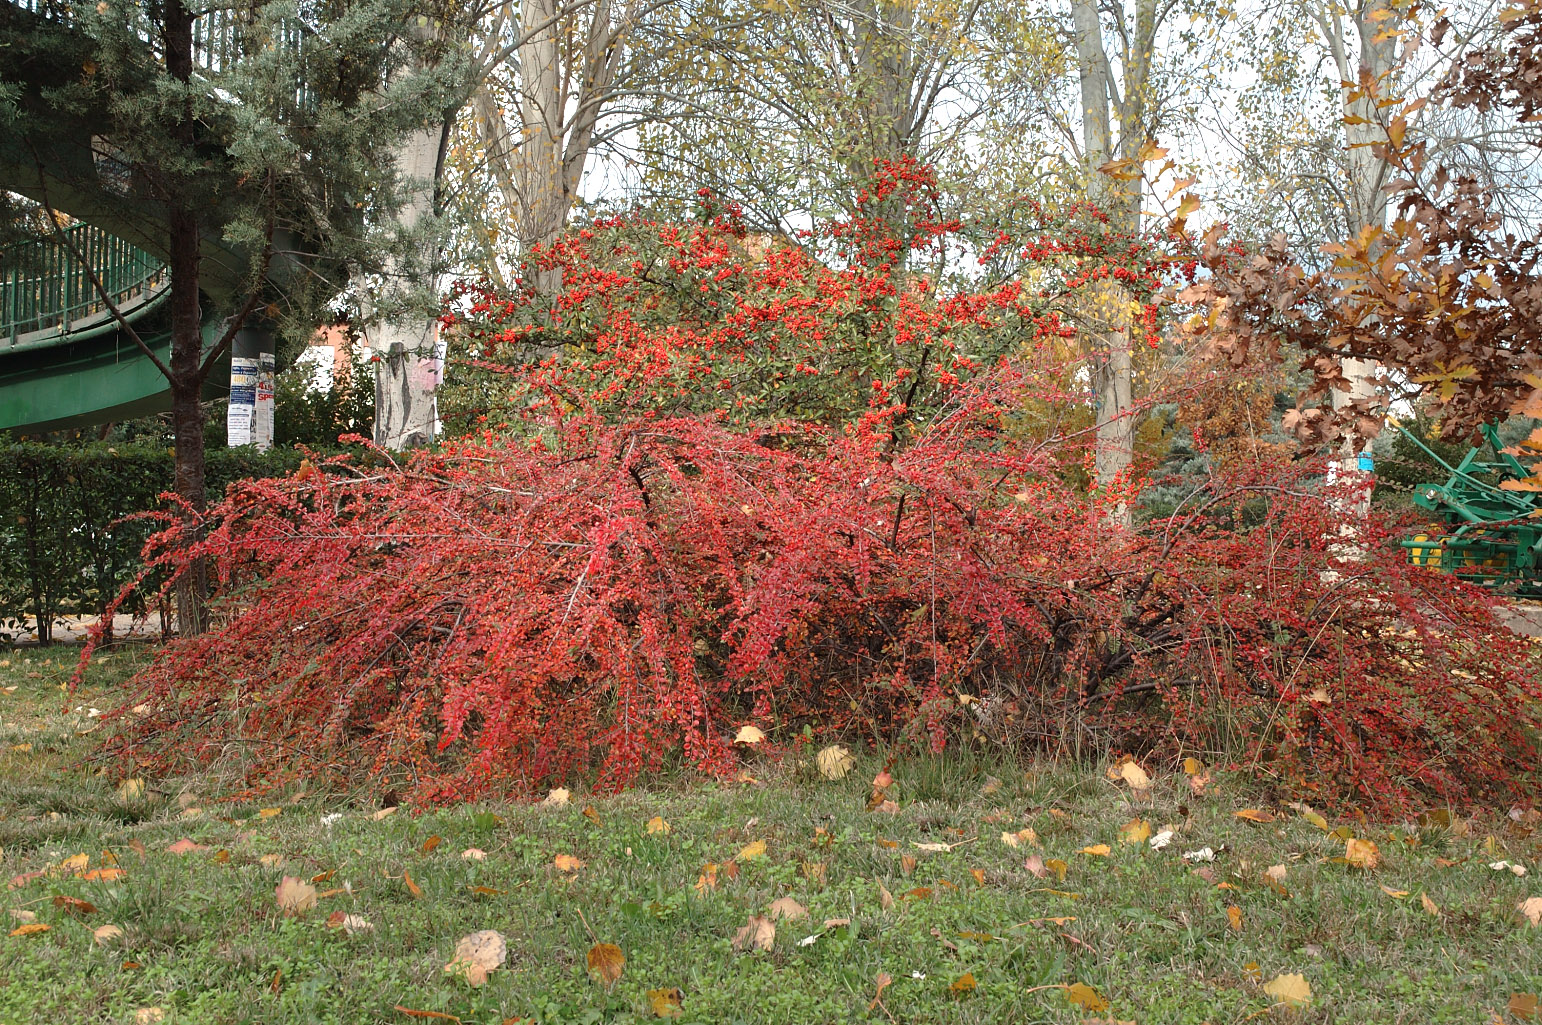 Group of <span class=cursiva>Cotoneaster horizontalis</span> (in front, with ± horizontal branches) and <span class=cursiva>Pyracantha crenatoserrata</span> in autumn